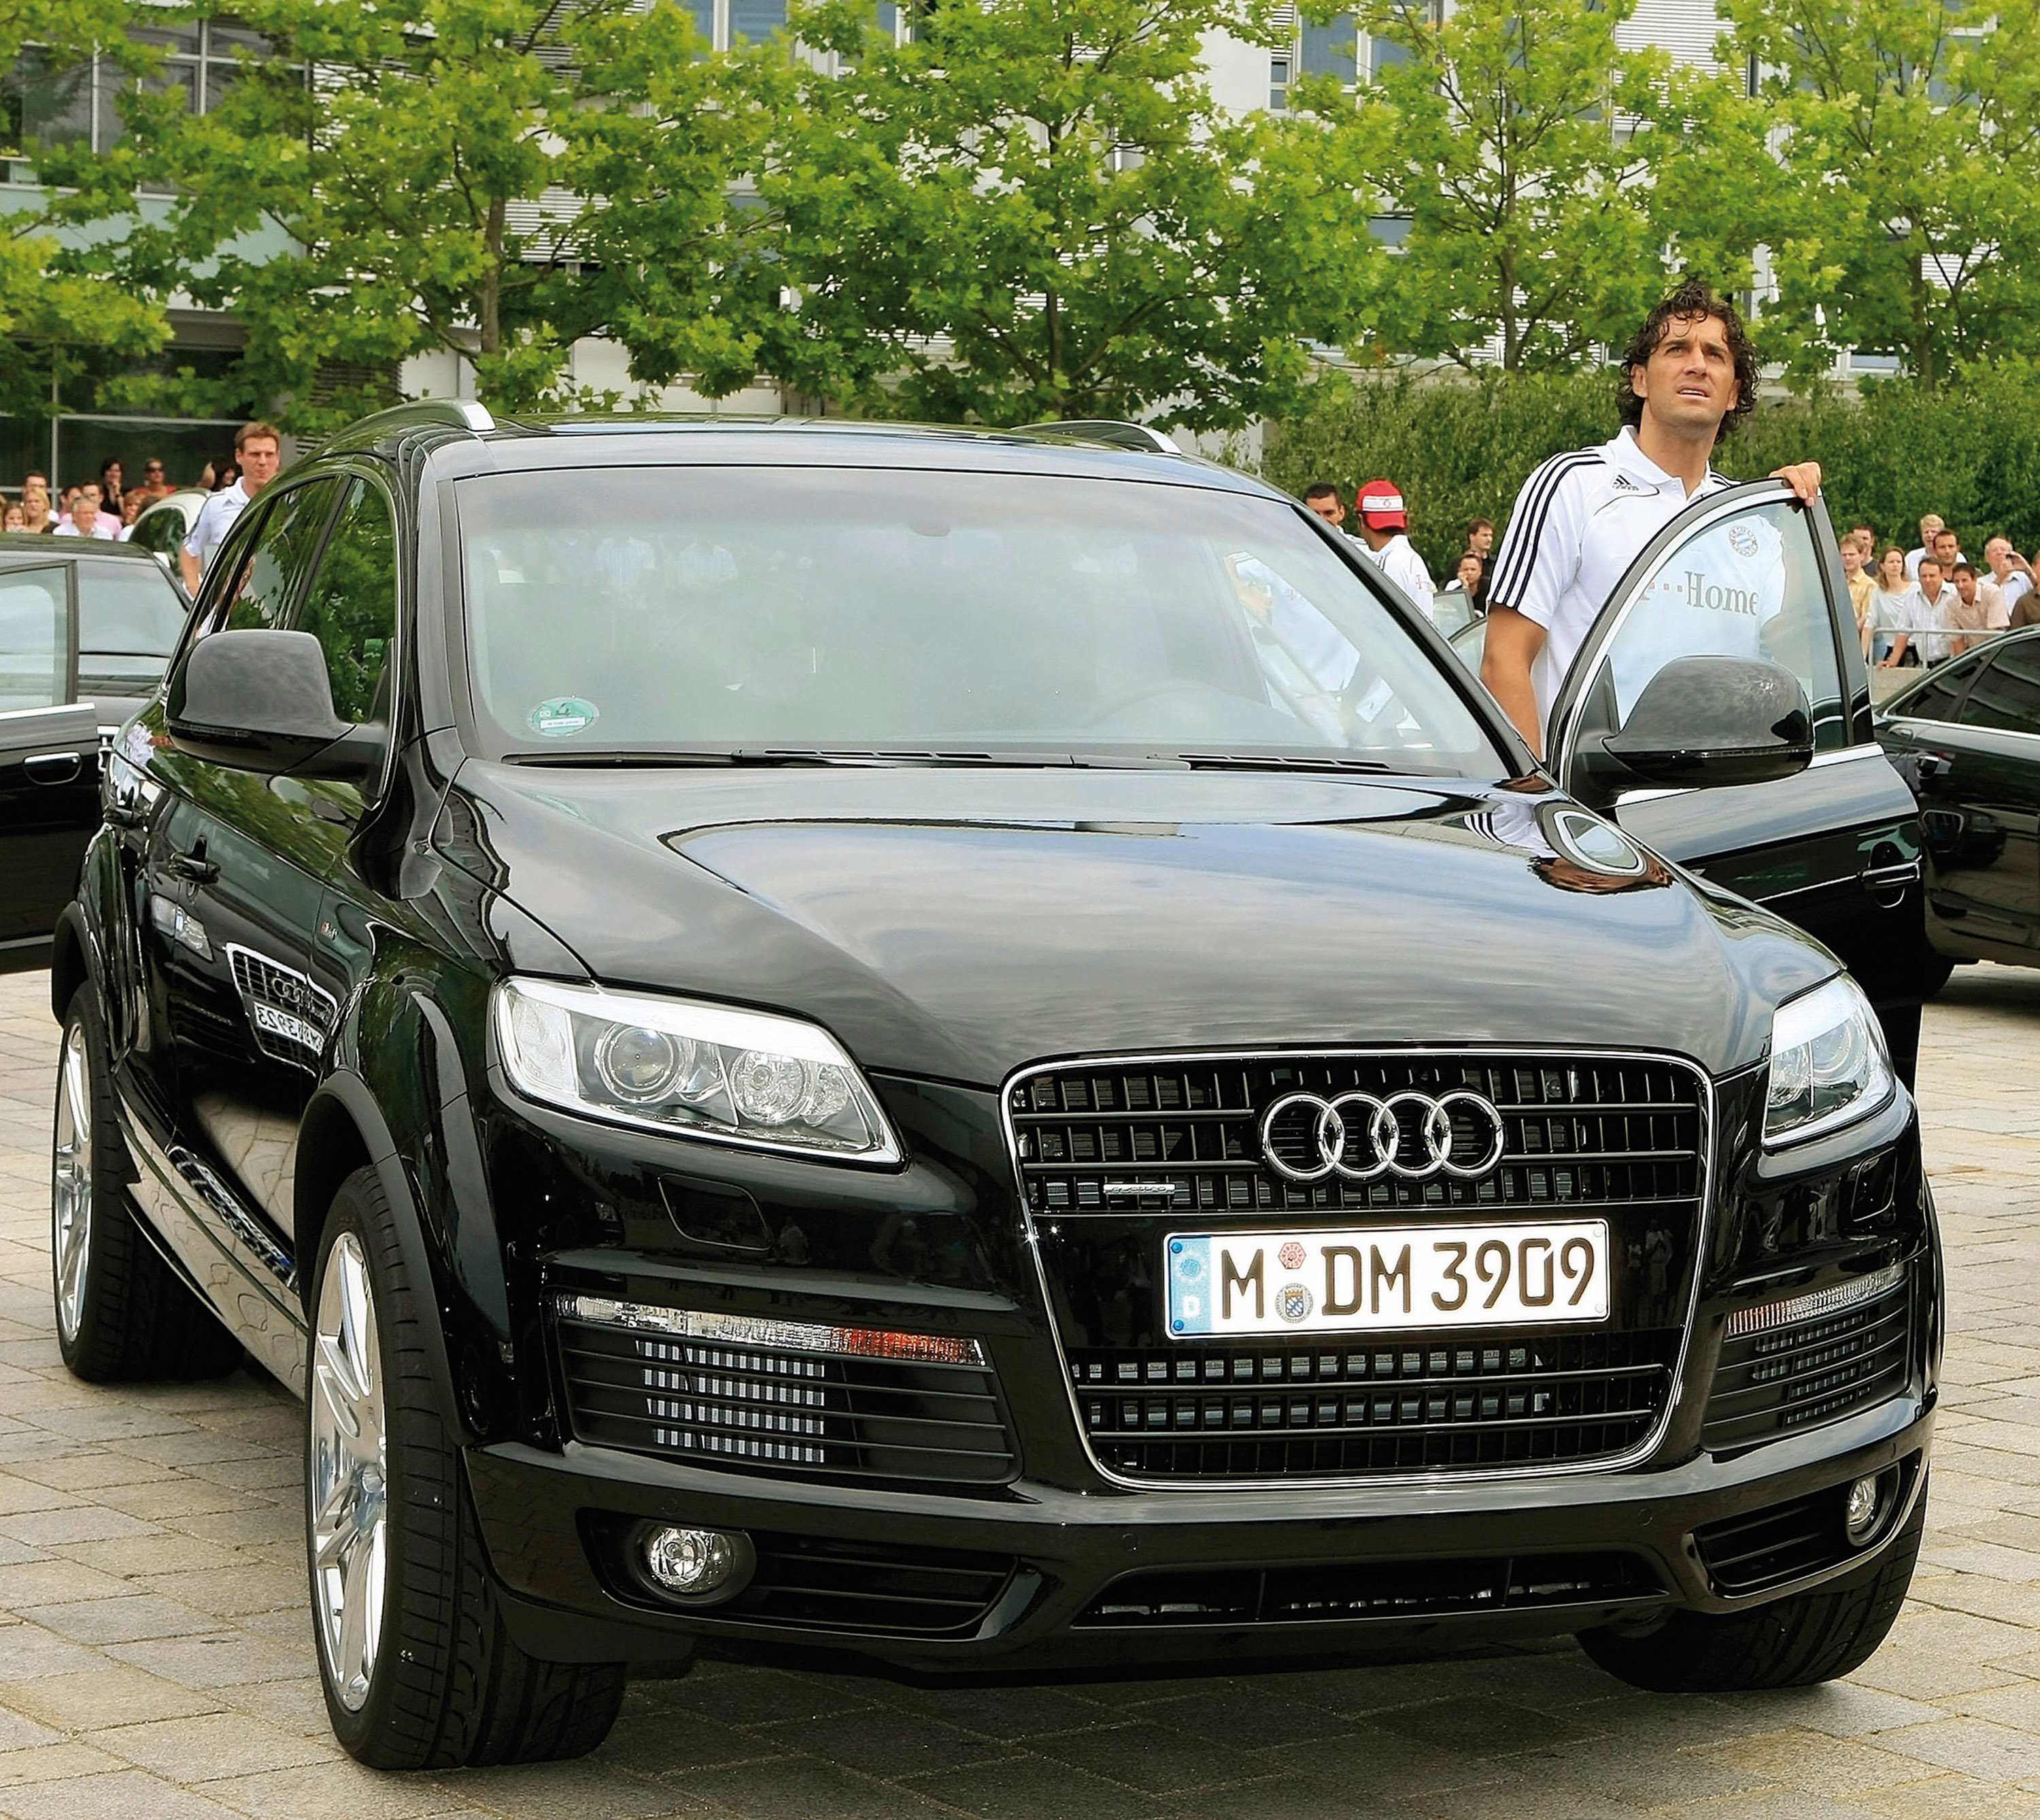 Q7 car - Color: Black  // Description: amazing